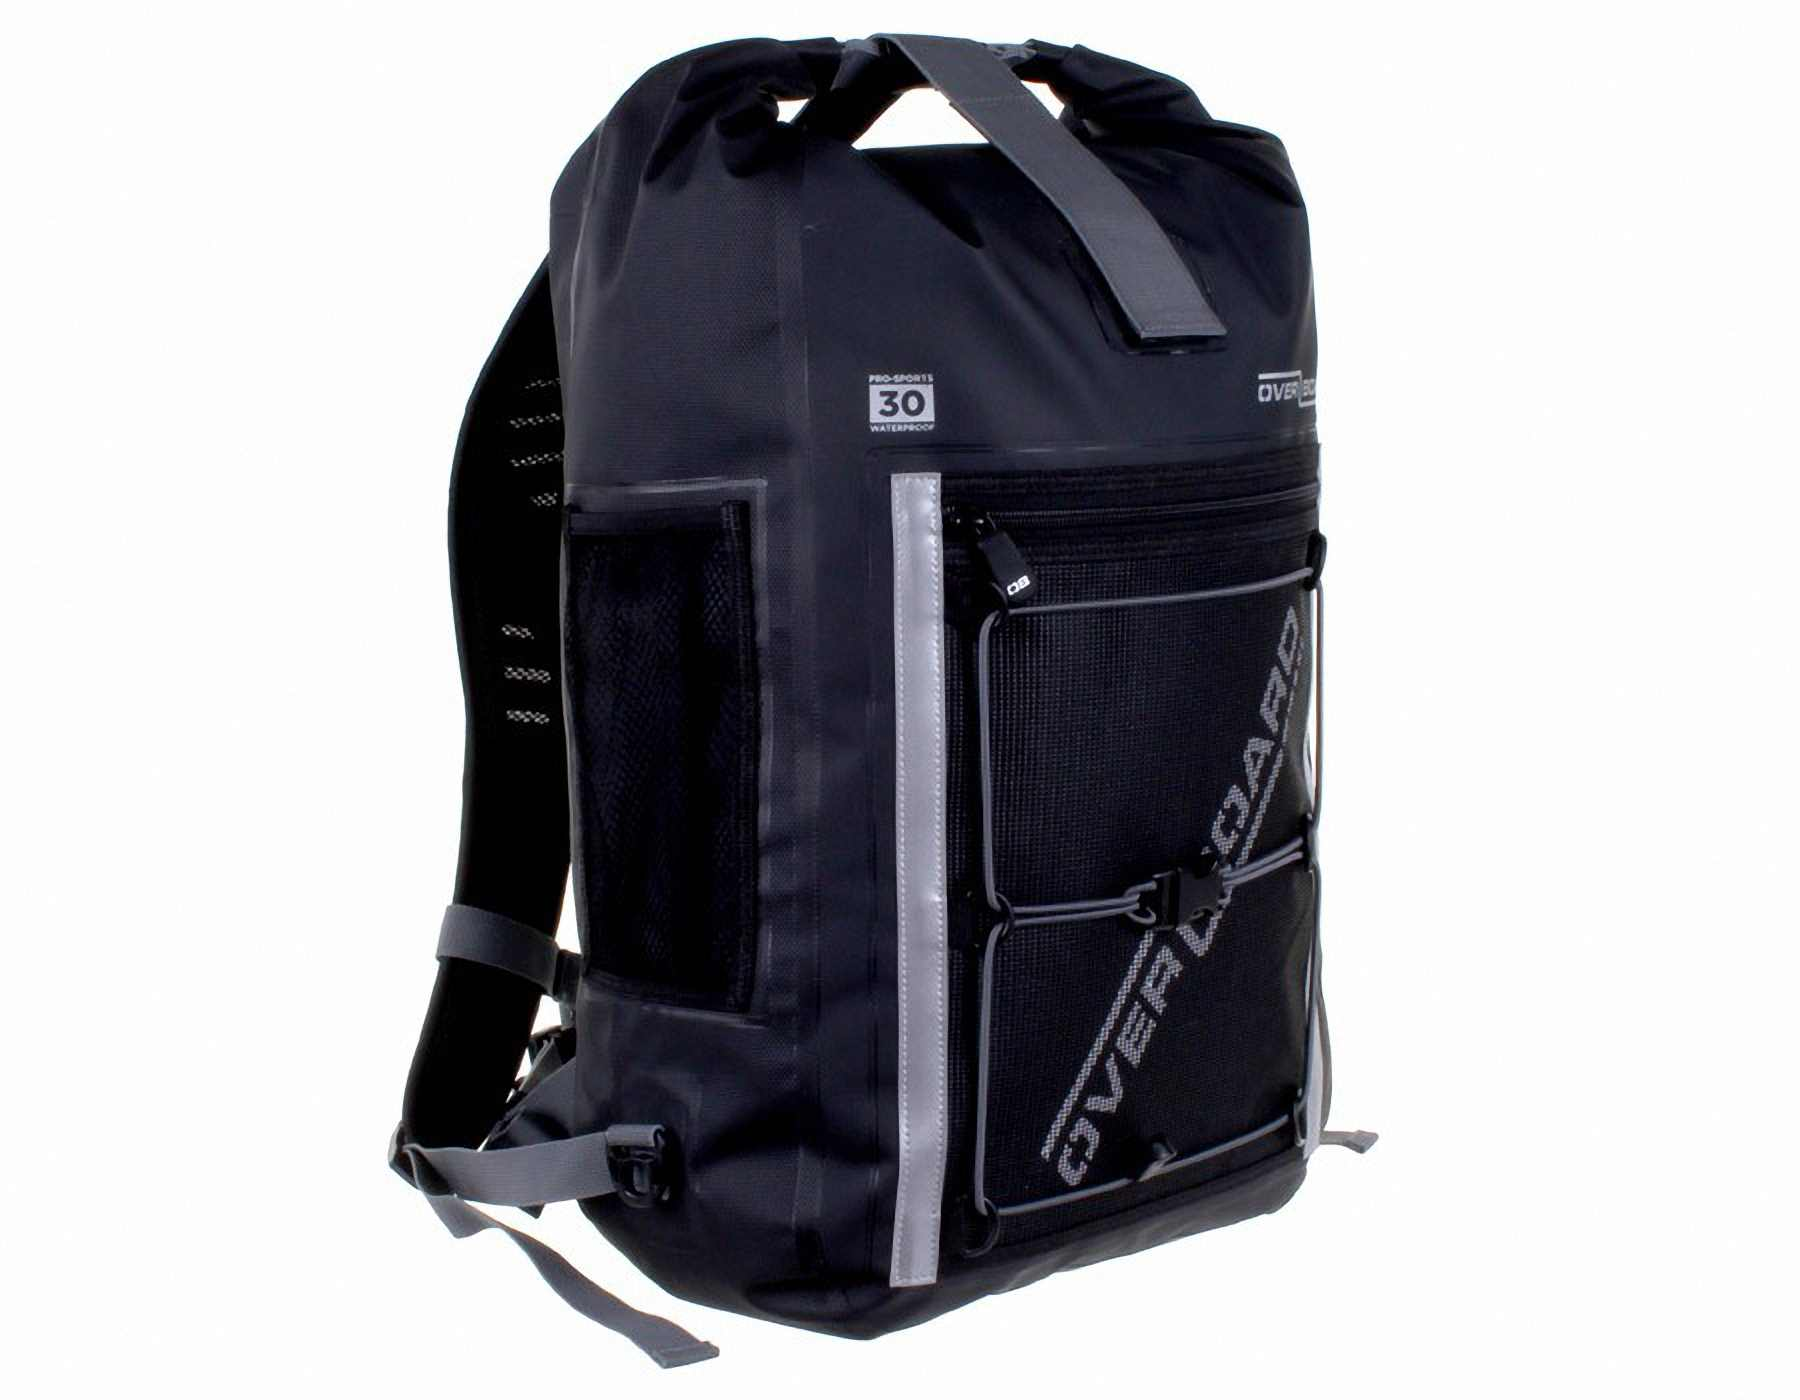 Водонепроницаемый рюкзак OverBoard OB1146BLK - Pro-Sports Waterproof Backpack - 30 литров. Фото 2